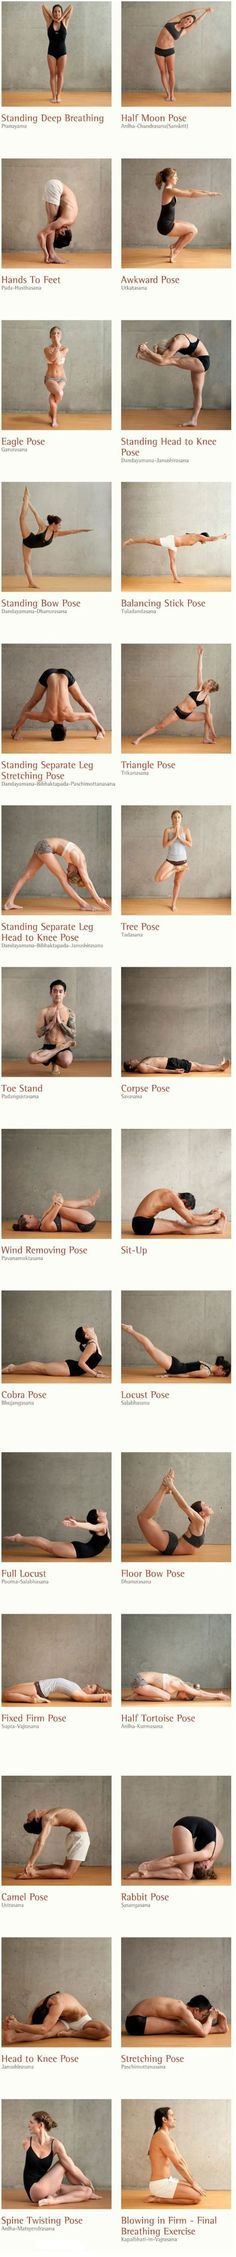 Bikram The best yoga poses filmstrip. Here are 26 different yoga poses and 2 breathing excercises to work out your body inside out. Stimulate your organs, glands and nerves. Increse the oxidization through your whole body. Vinyasa Yoga, Ashtanga Yoga, Bikram Yoga Poses, Hard Yoga Poses, Difficult Yoga Poses, Kundalini Yoga, Yin Yoga, Yoga Meditation, Meditation Space